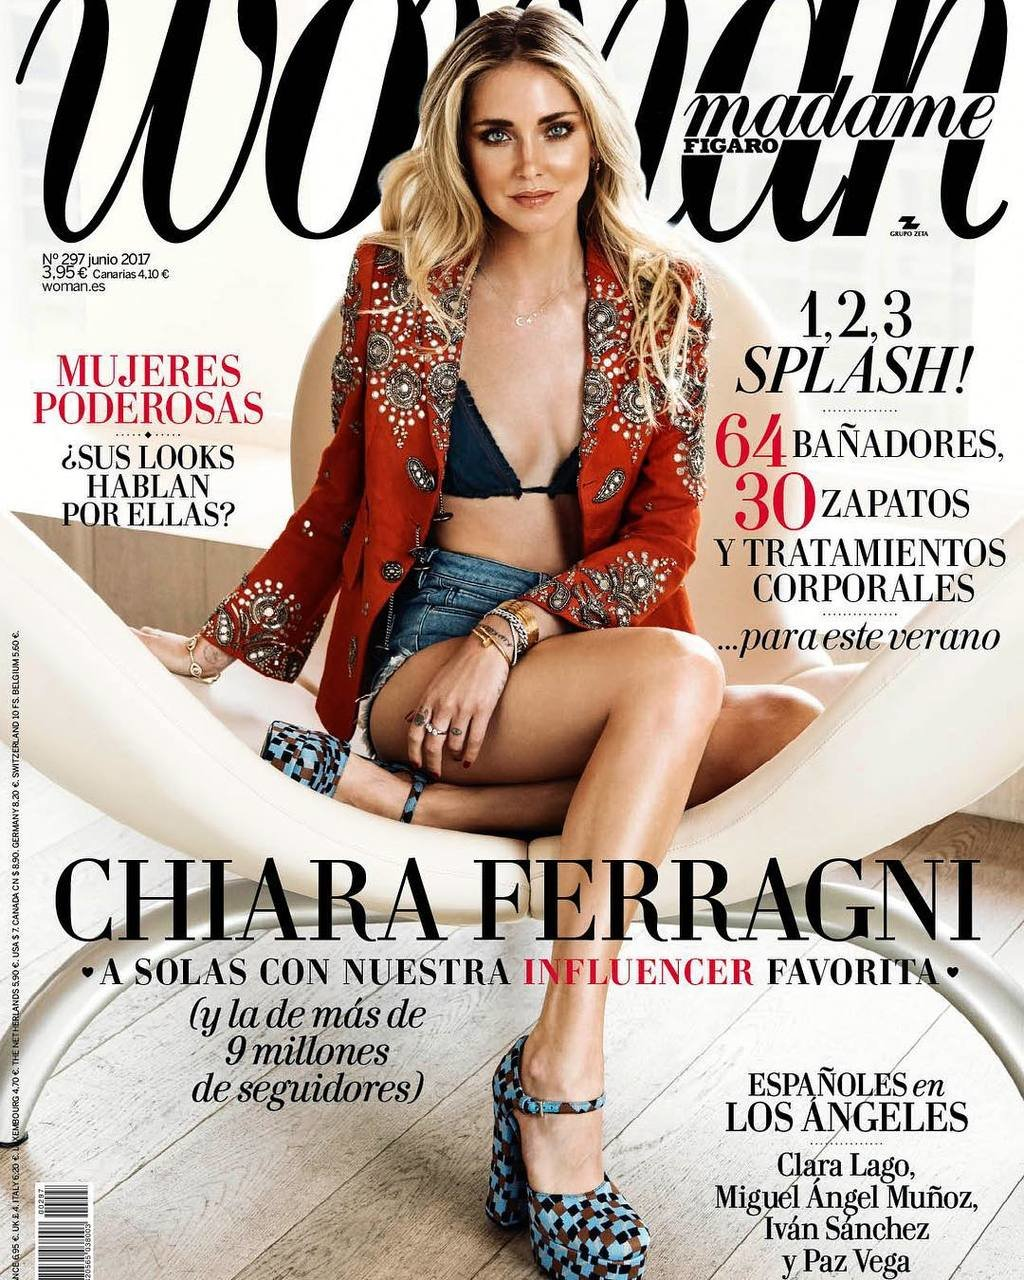 New cover is out 🤗 @woman_es #TheBlondeSaladNeverStops image